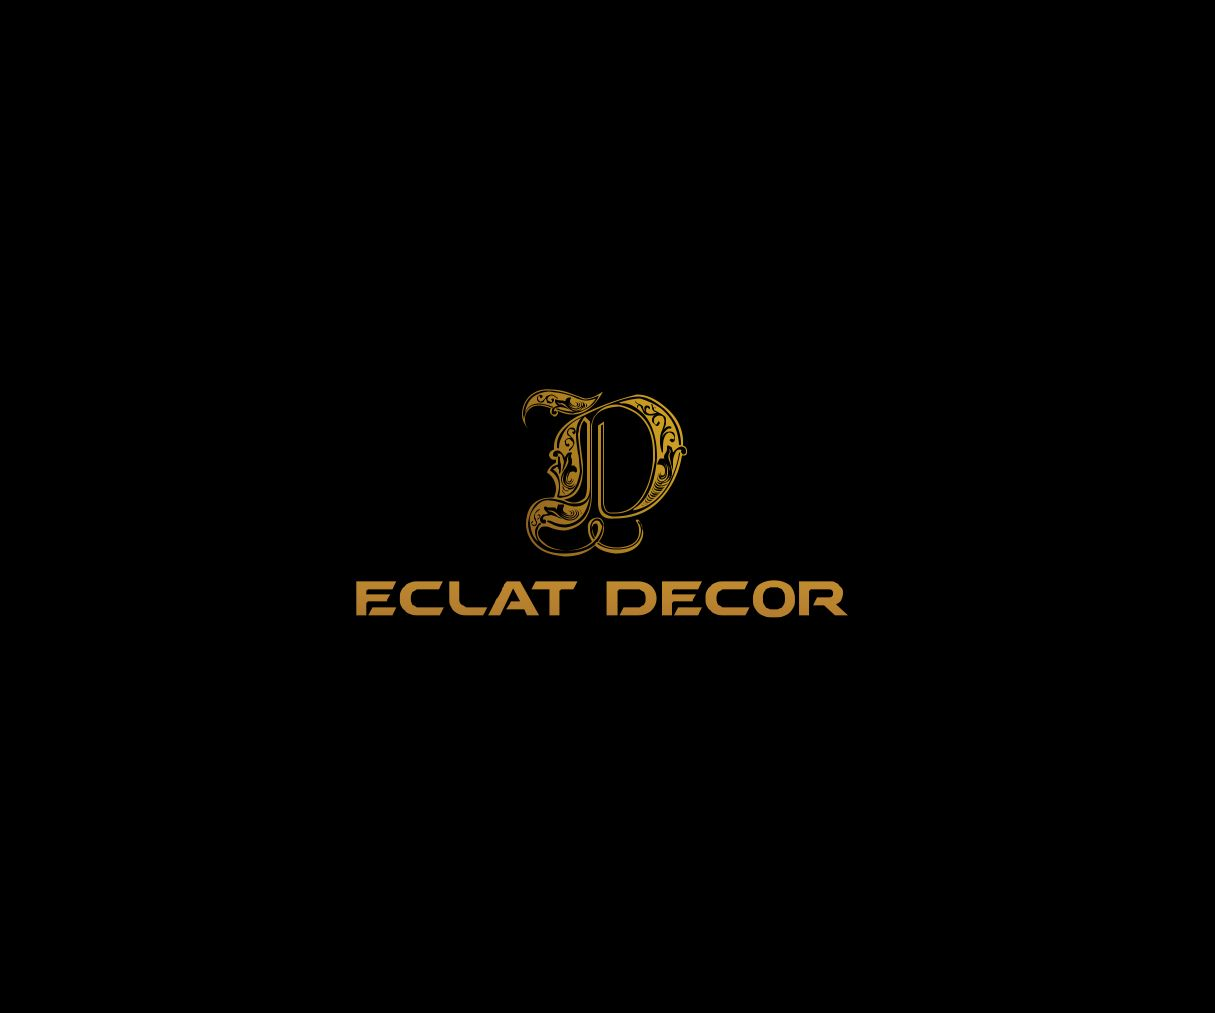 Logo Design by Fareldook Fareldook - Entry No. 10 in the Logo Design Contest Imaginative Logo Design for Éclat Decor.